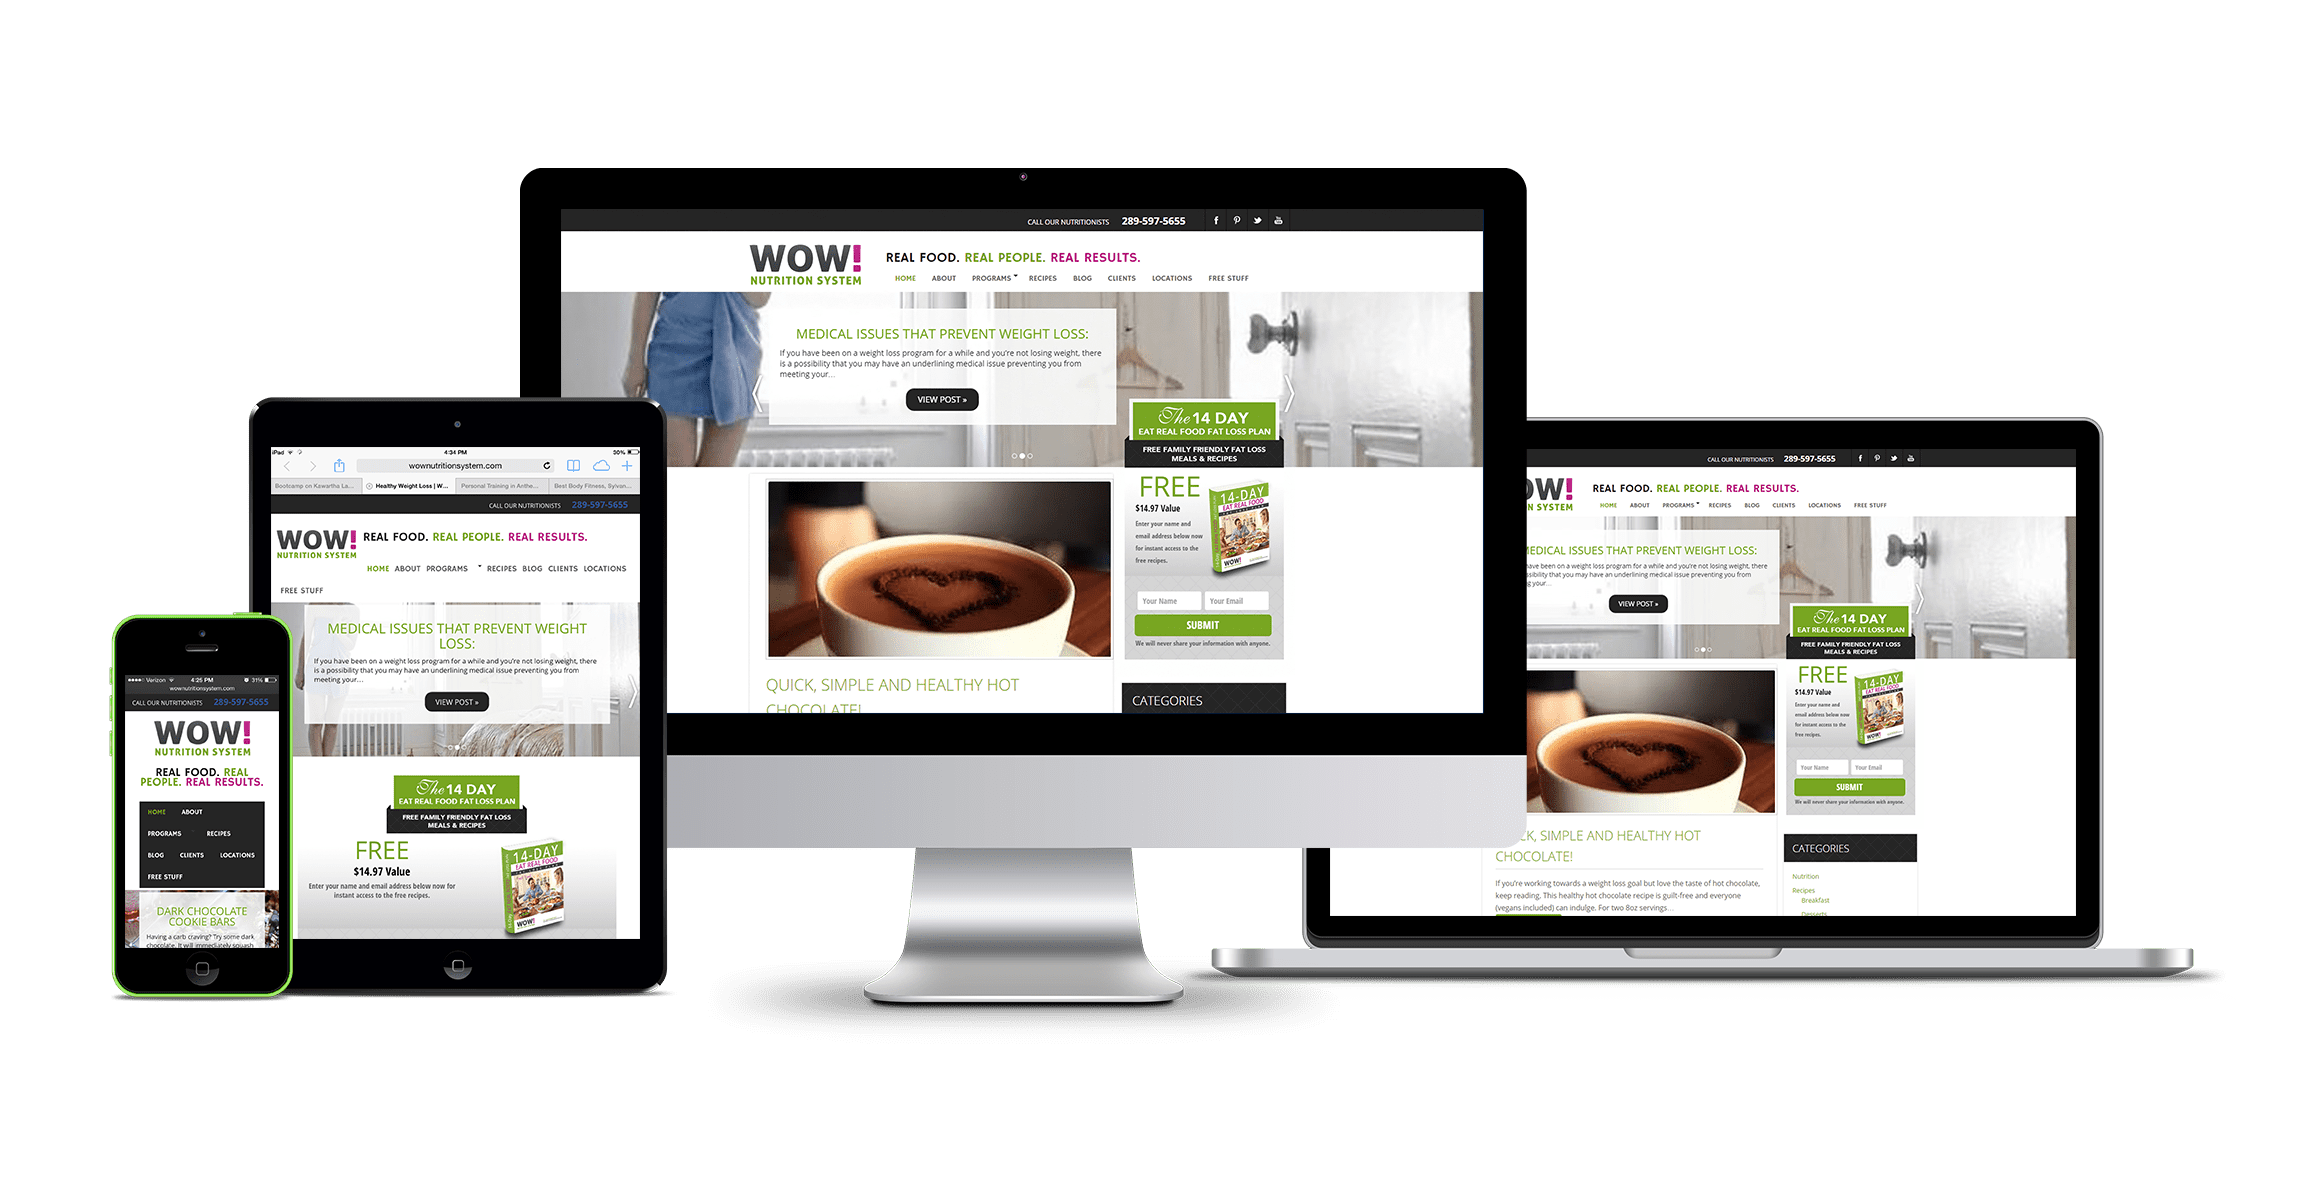 fwf-wellness-web-design